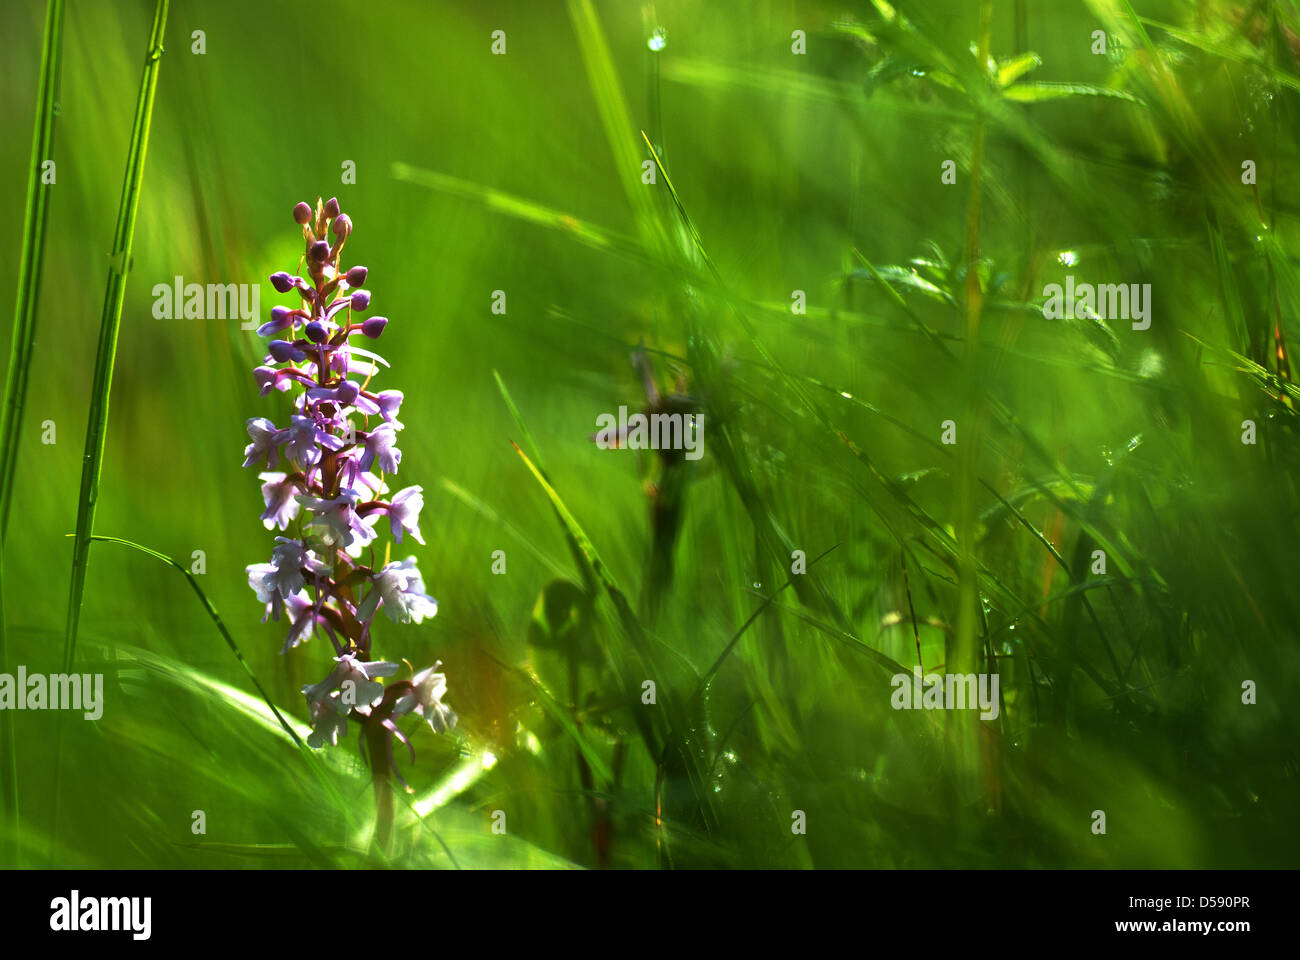 Summer at grass roots level - Stock Image